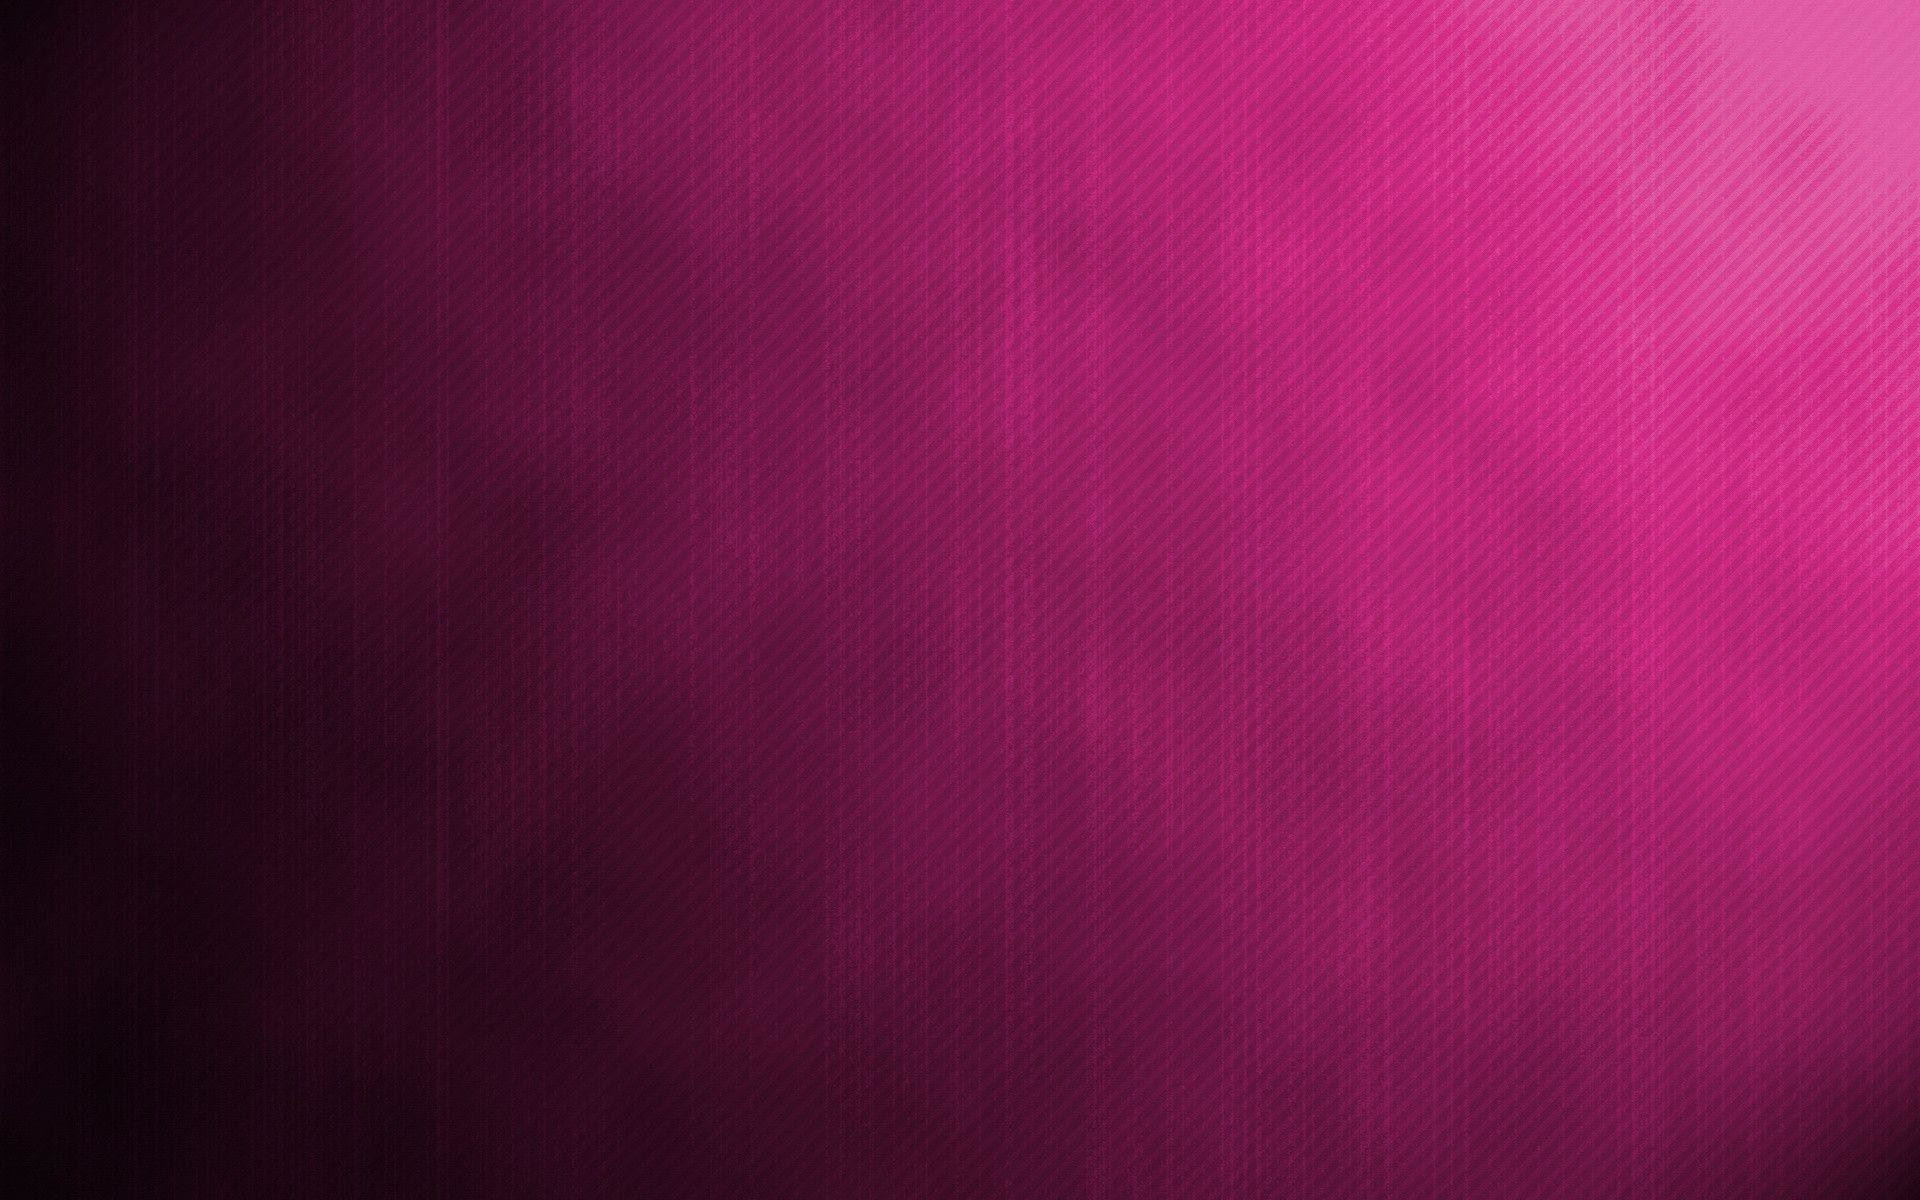 1097395 popular cool pink background 1920x1200 screen